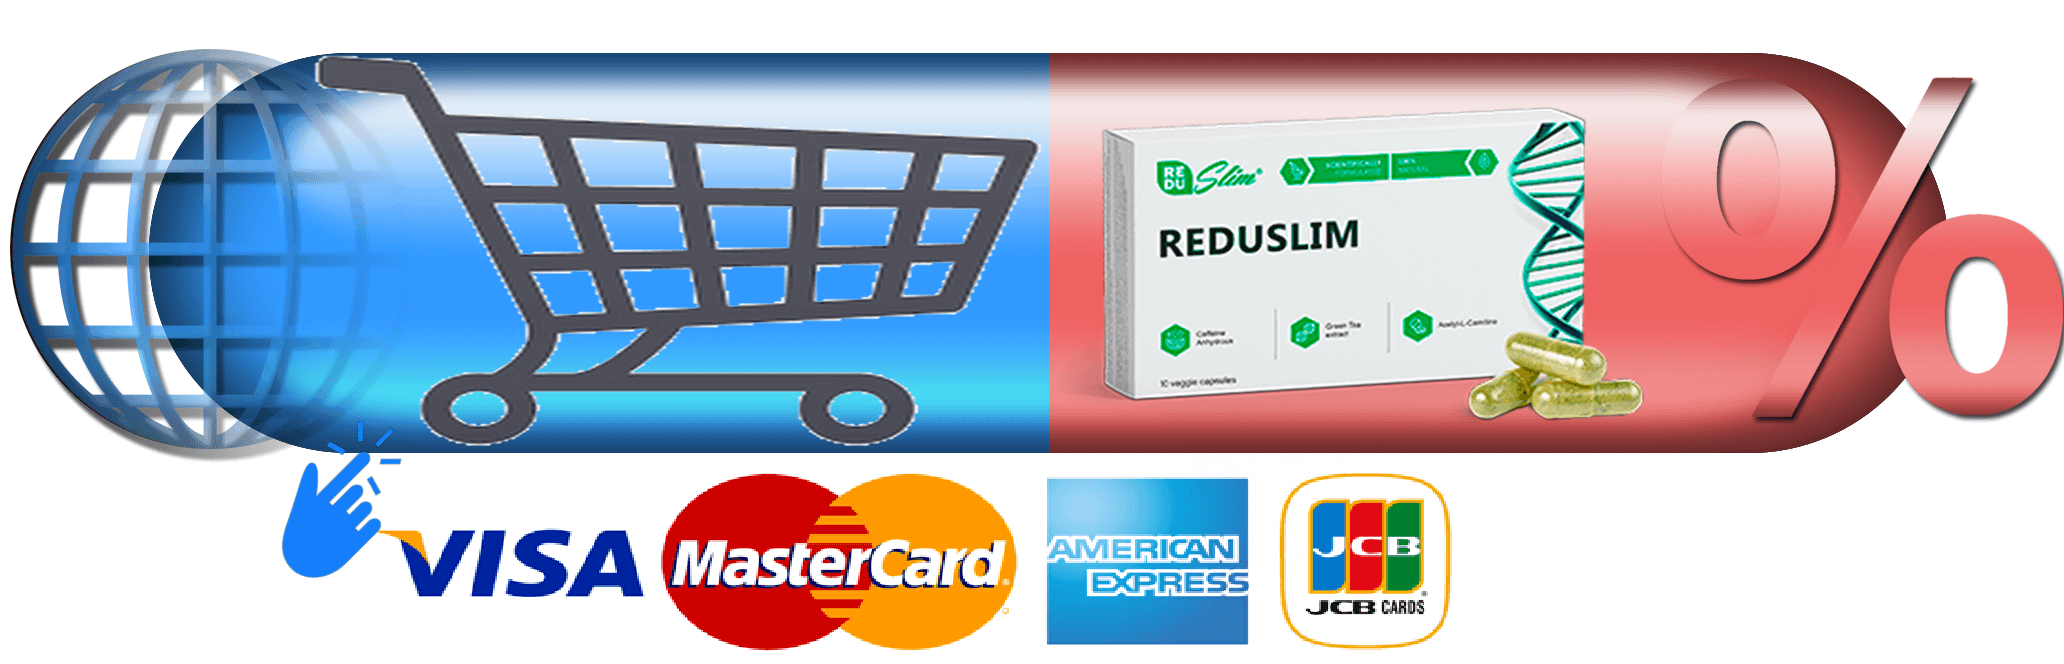 Buy Reduslim tablets